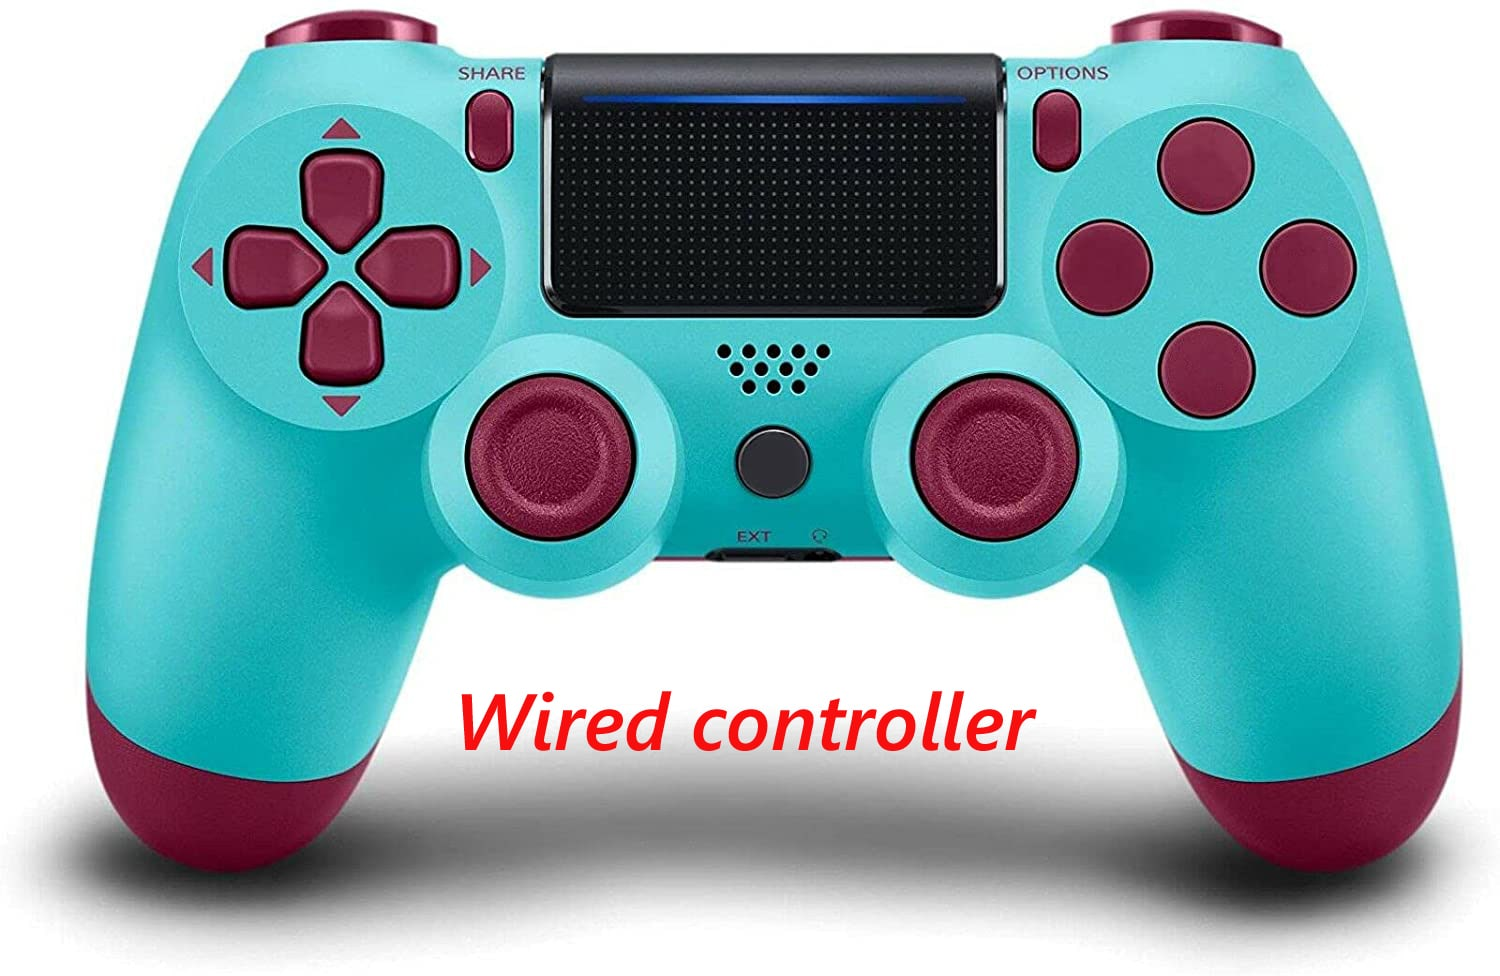 PS4 Wired Controller Dual Shock 4 Gamepad For Sony Playstation 4 Berry Blue - 1